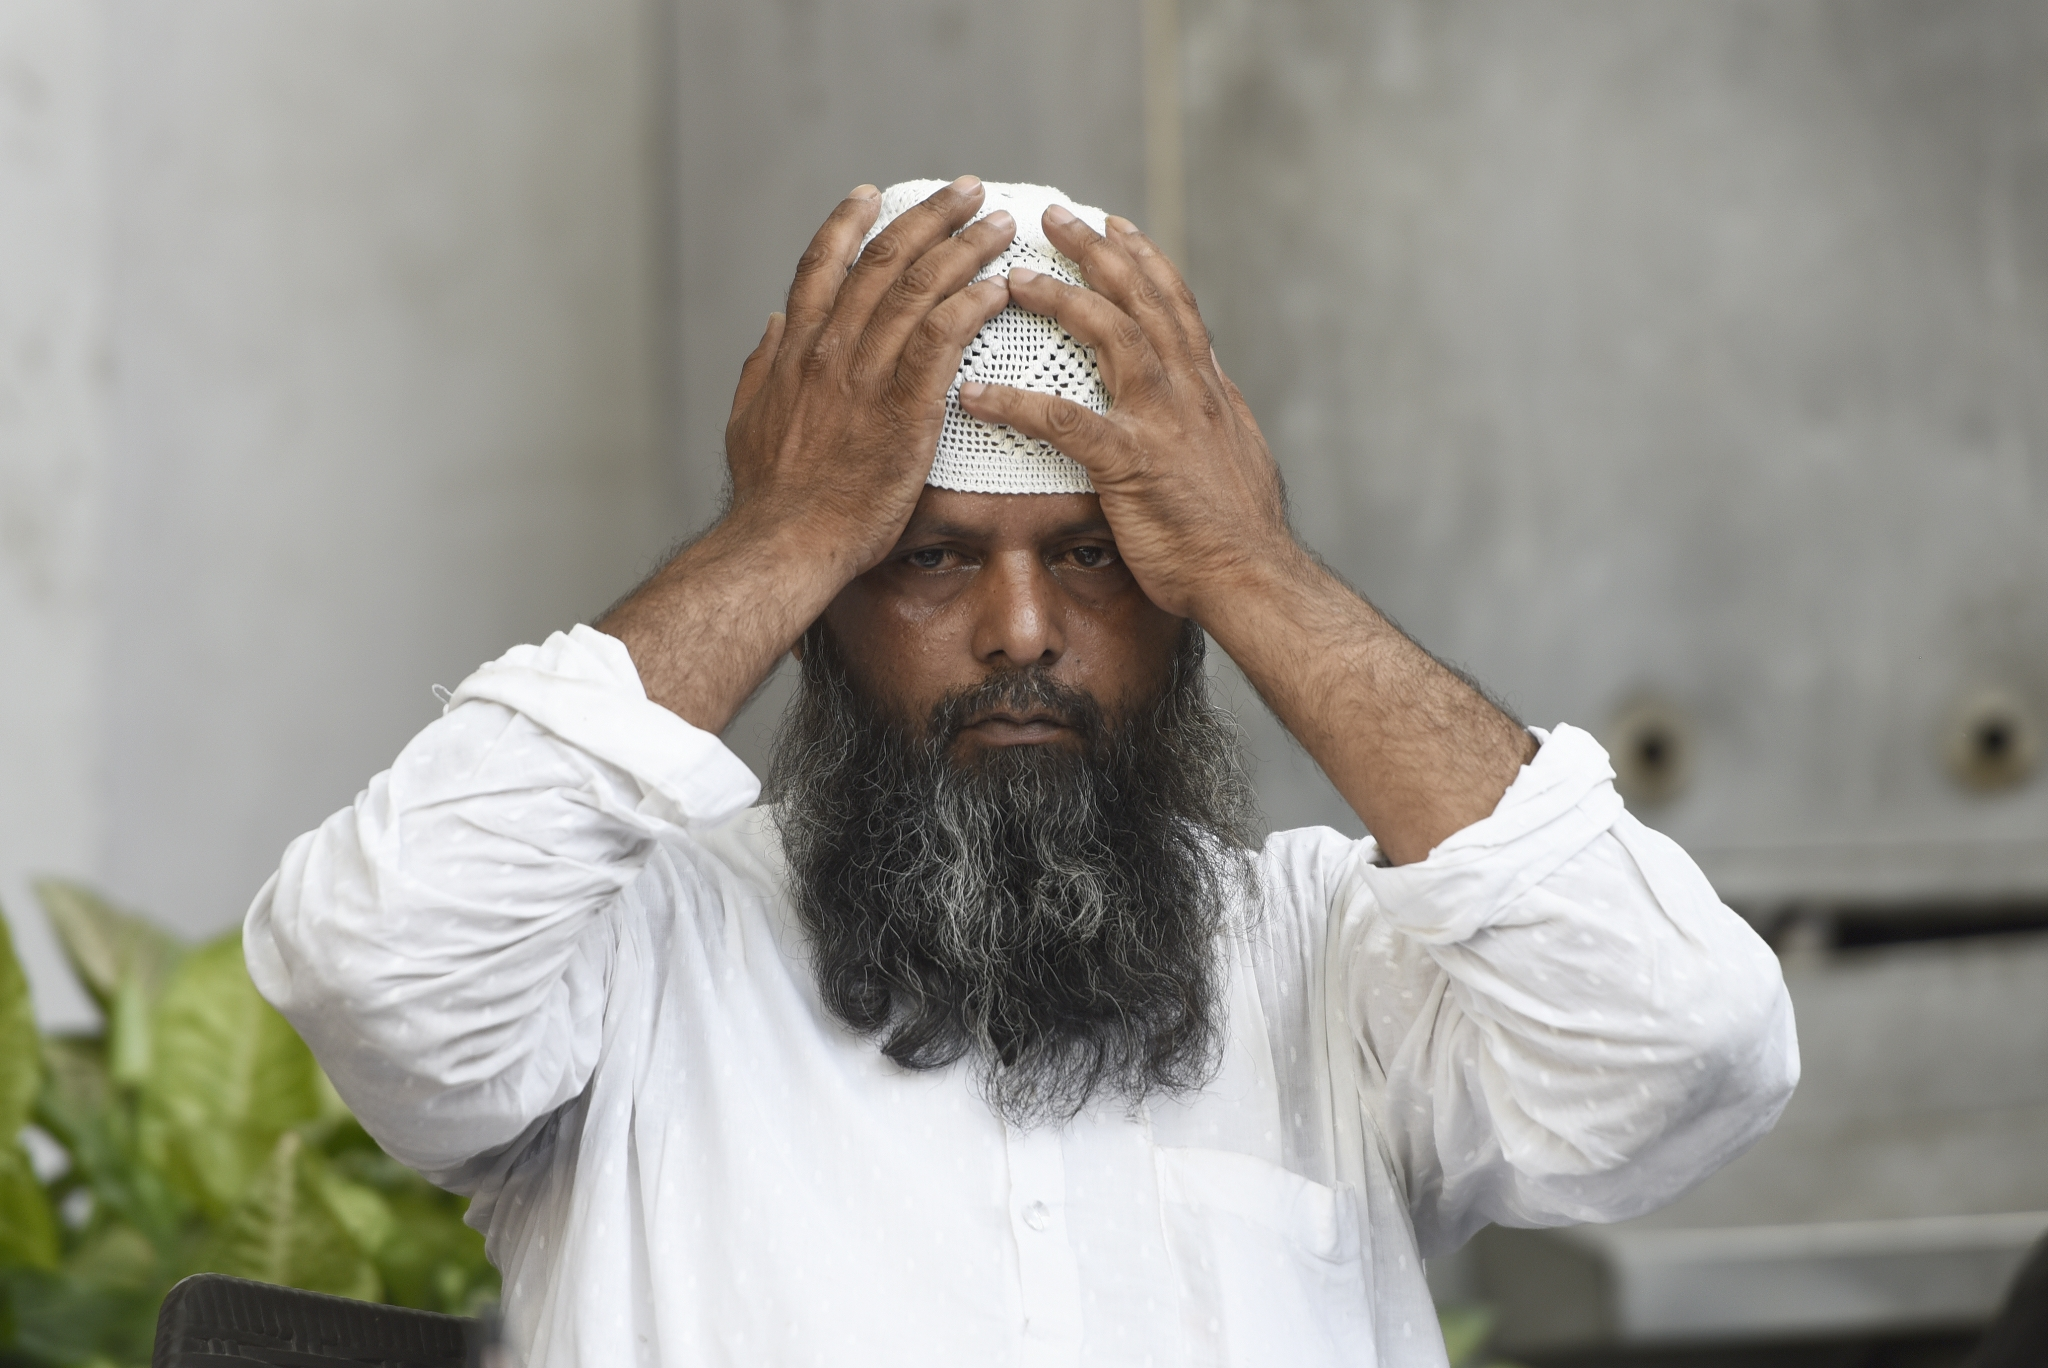 court of sessions bail The court then rejected the bail prayer shahidul, 63, is now in dhaka central jail, in the case lodged under the controversial section 57 of information and communication technology (ict) act.